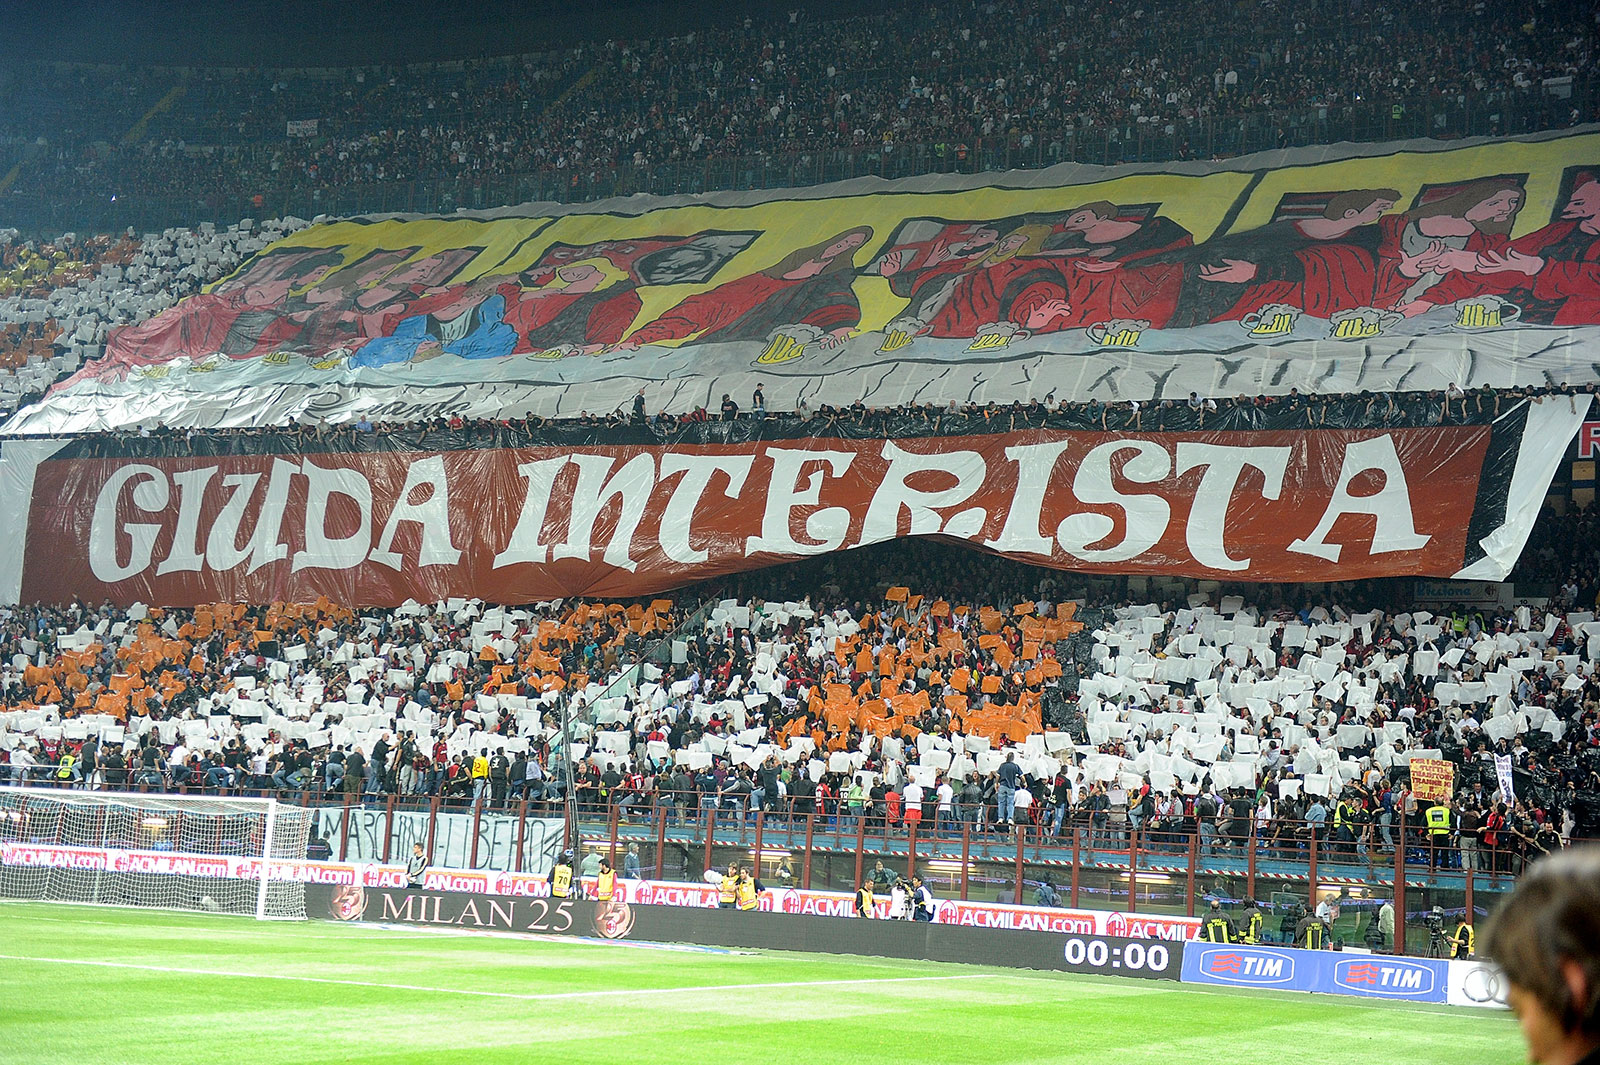 The anti-Leonardo banner of the Curva Sud during Milan-Inter at Stadio San Siro on April 2, 2011. (Photo by Dino Panato/Getty Images)